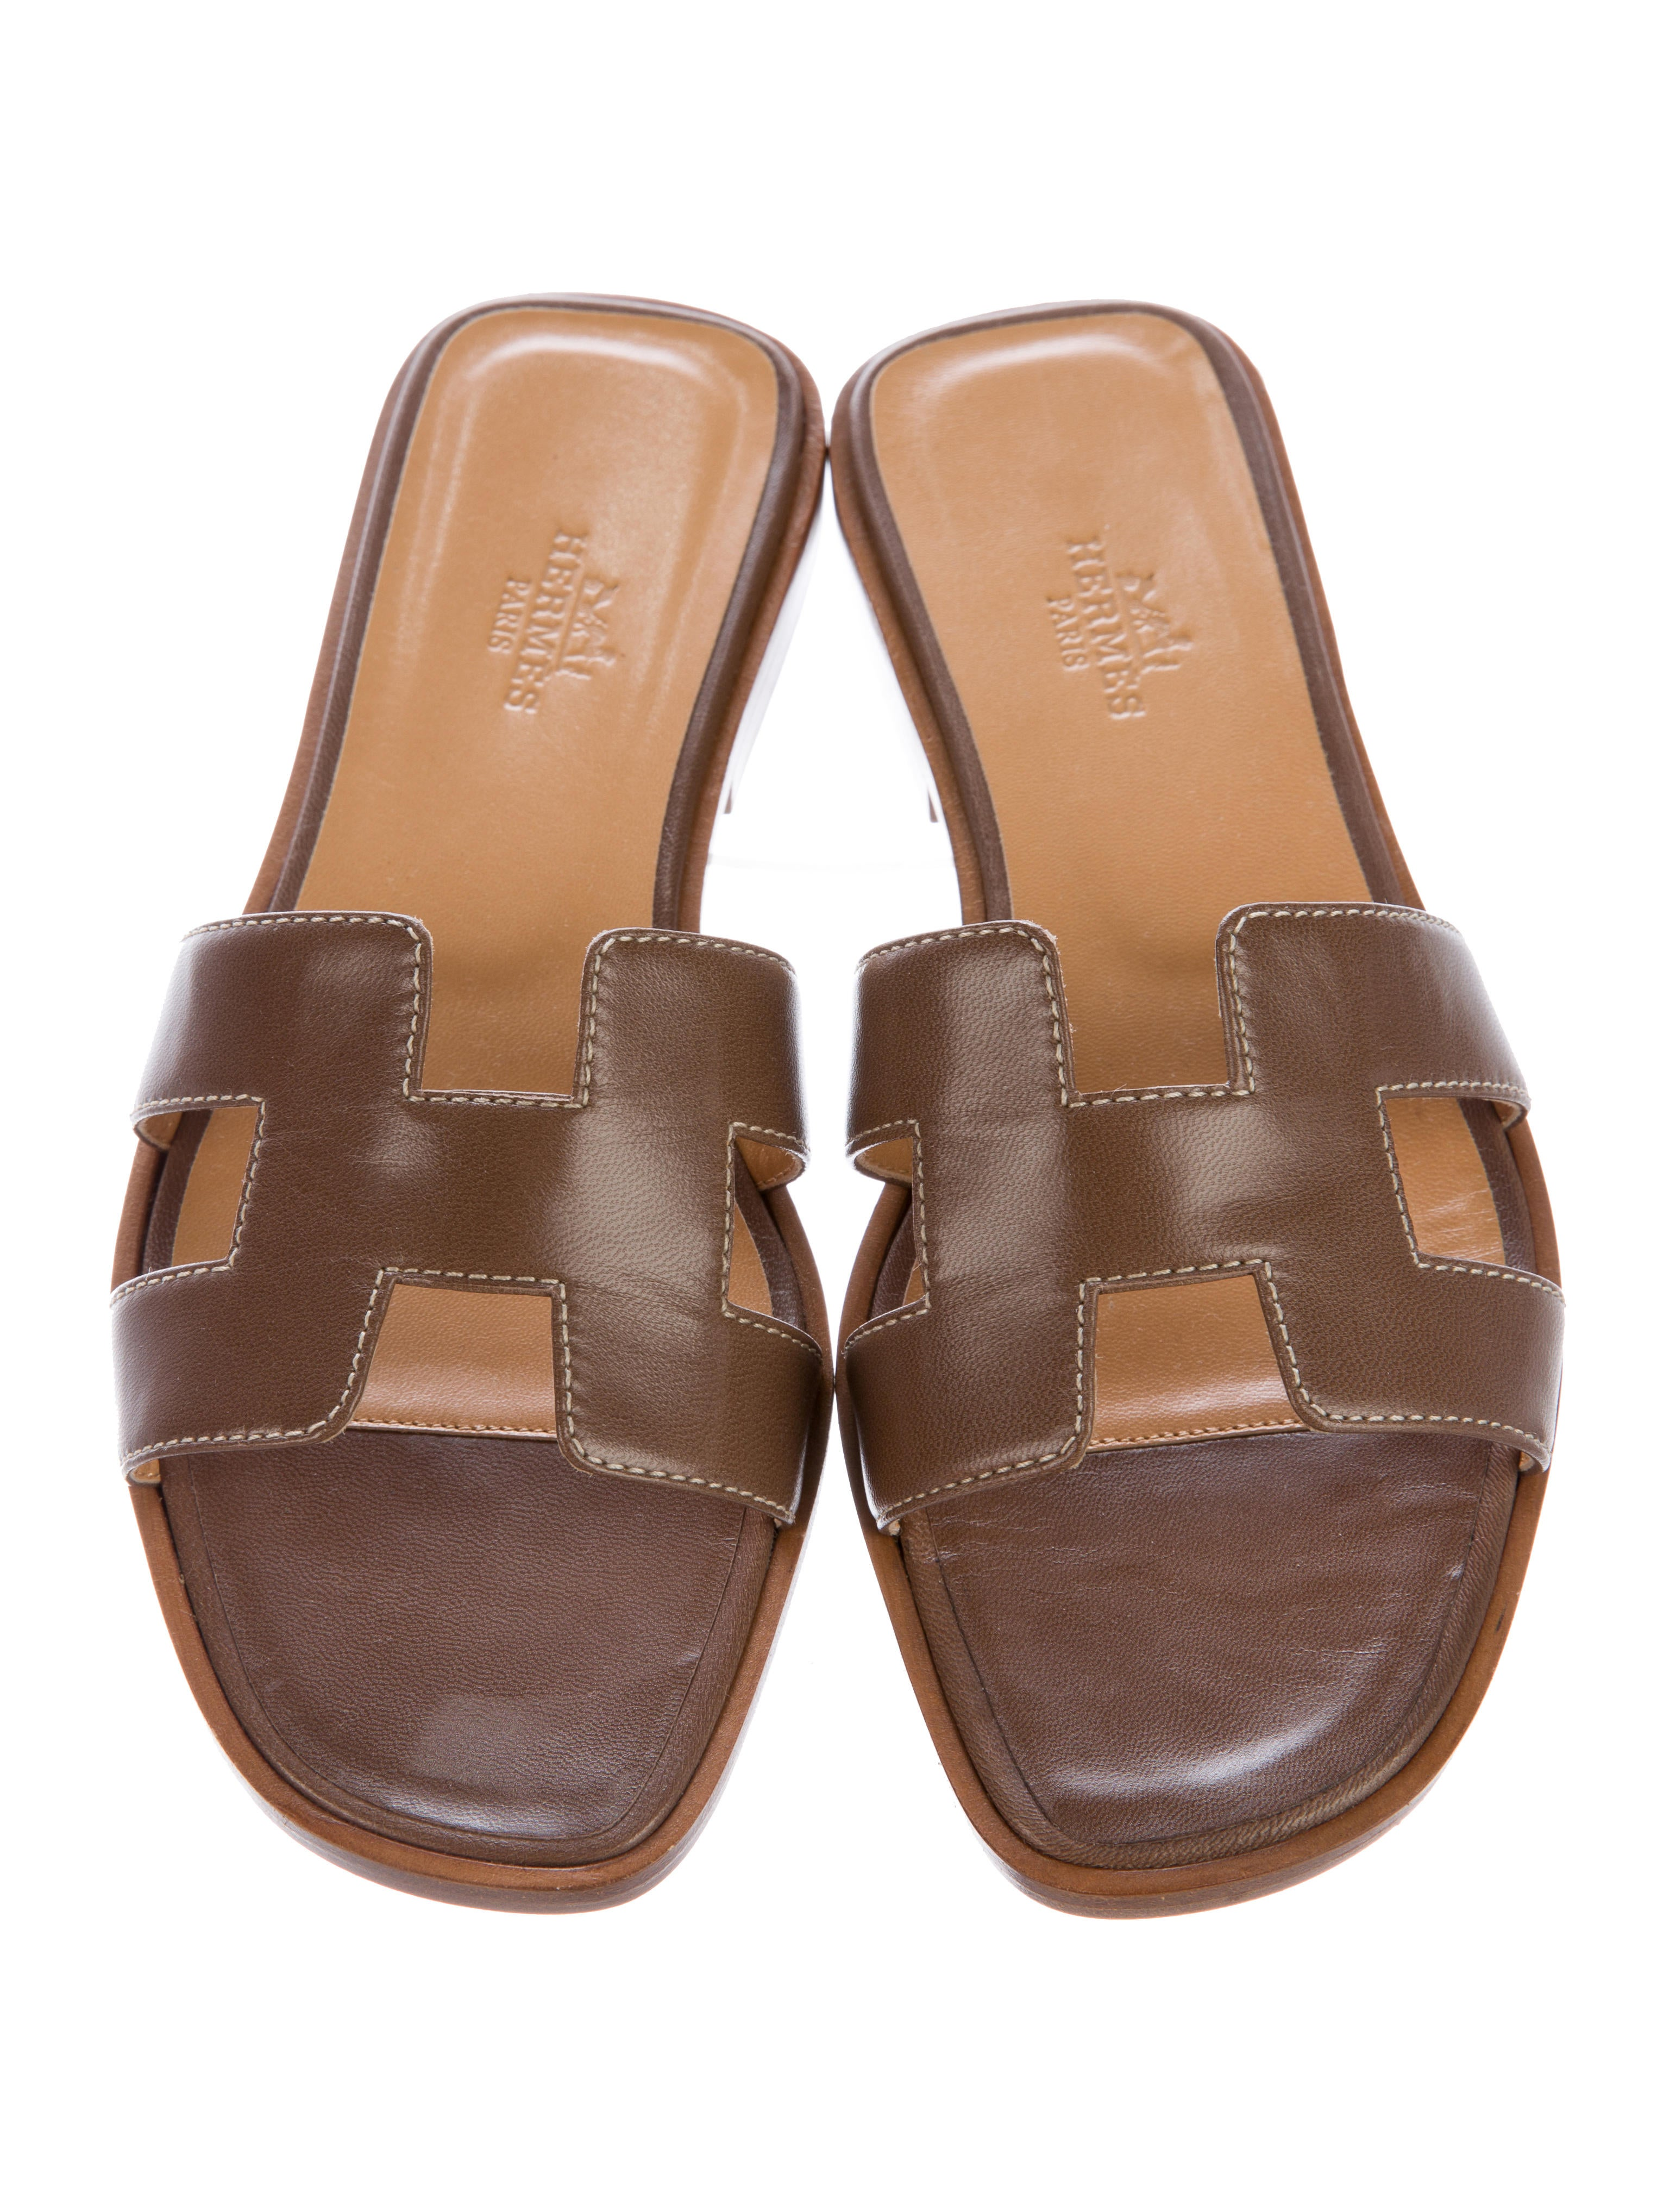 Lastest Herms Sandals  Shoes  HER38768  The RealReal